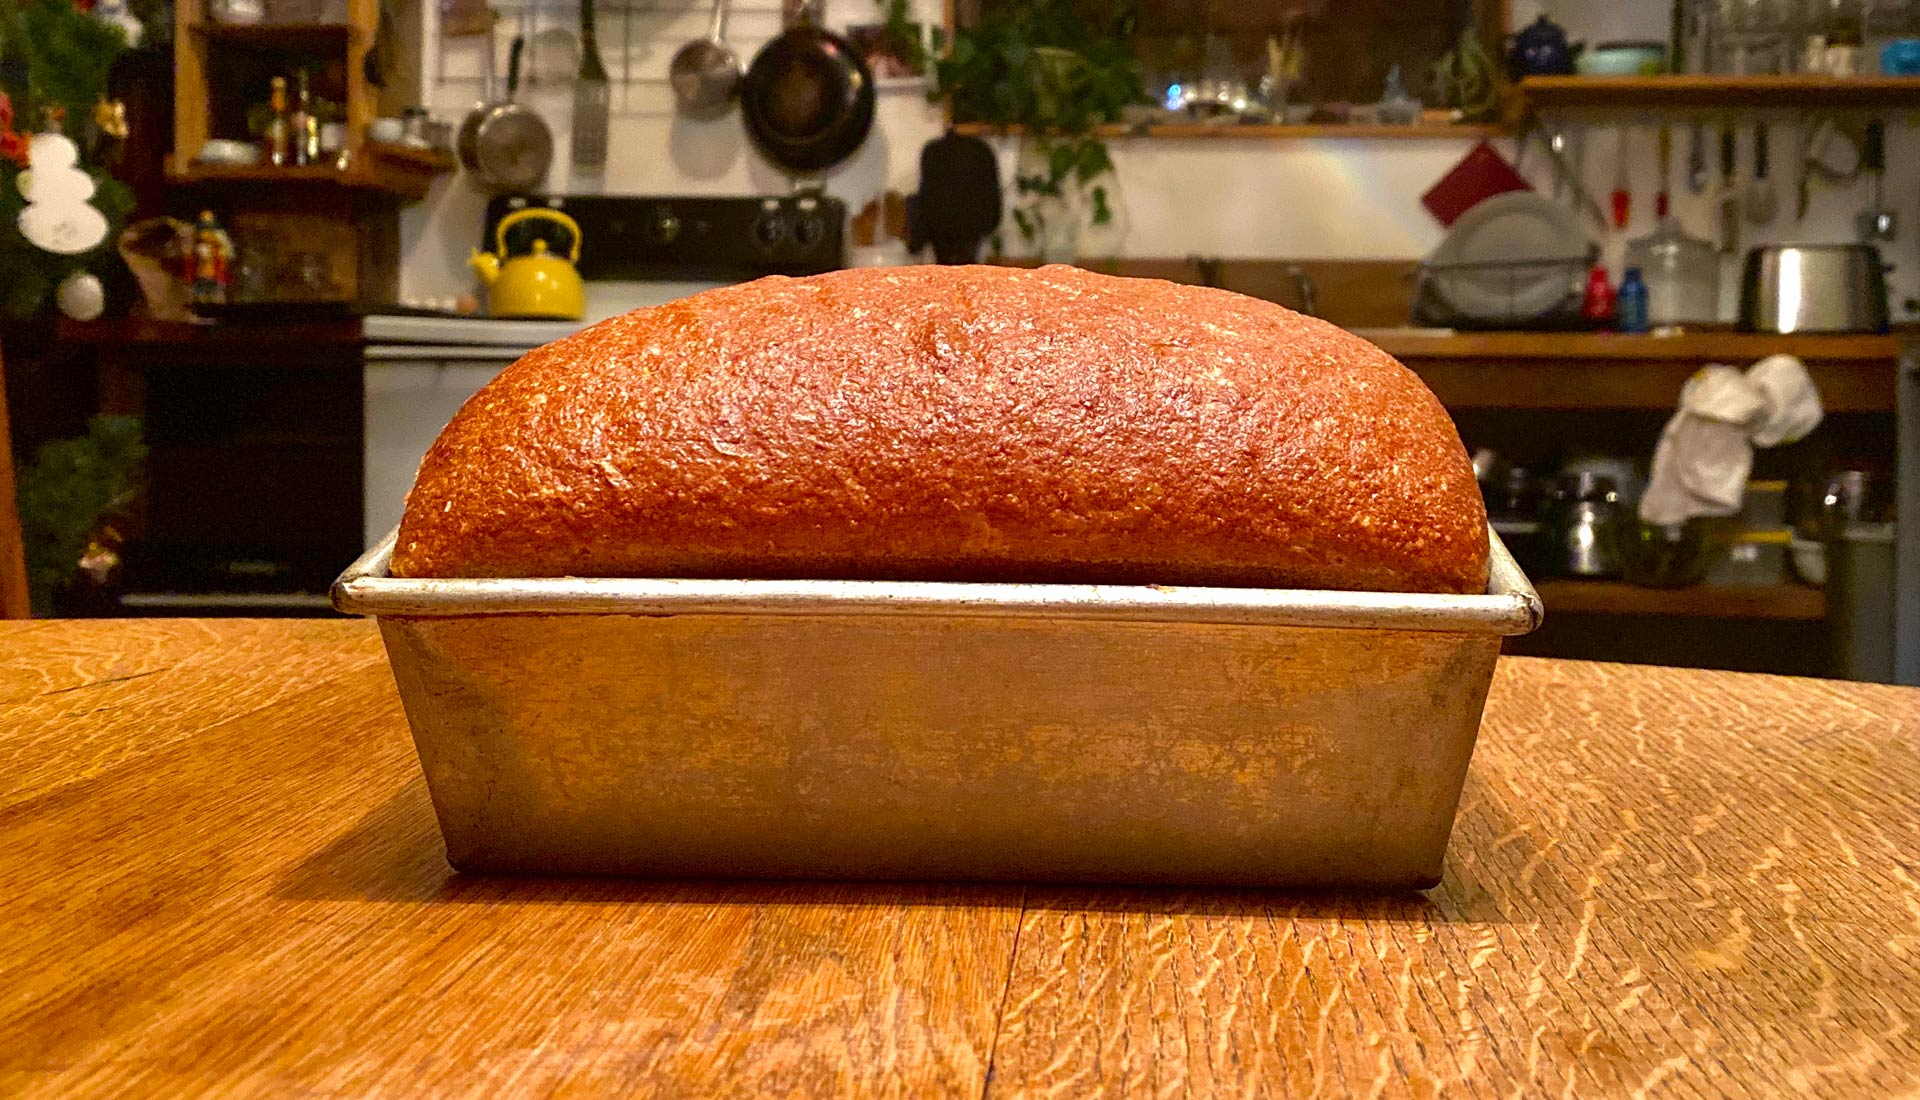 Loaf of bread in pan sitting on table in rustic kitchen